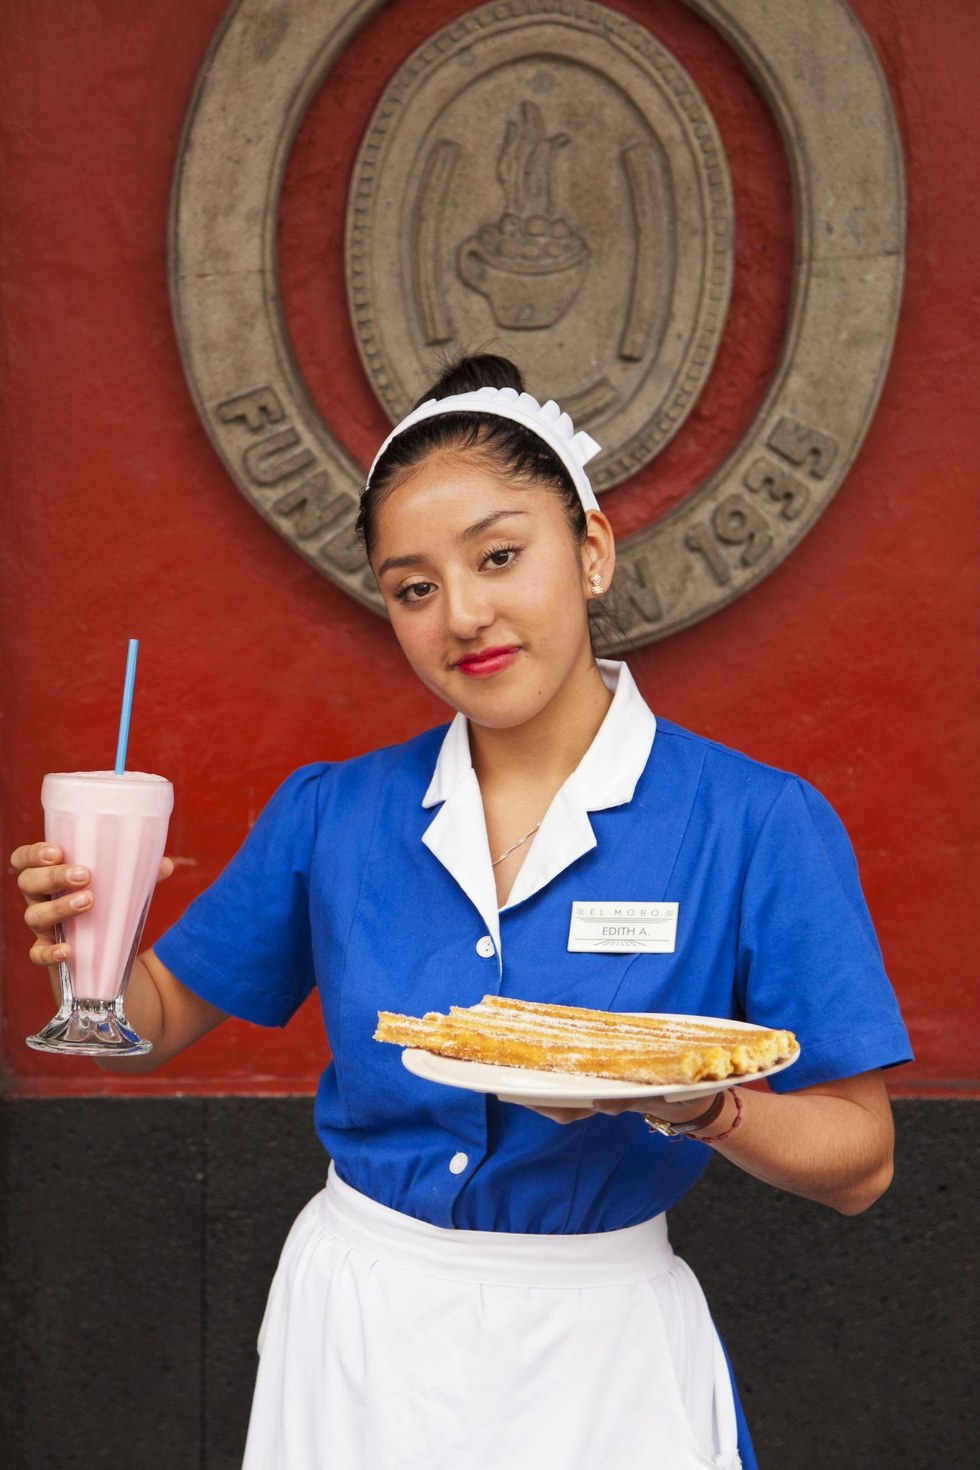 A waitress at Churrería El Moro